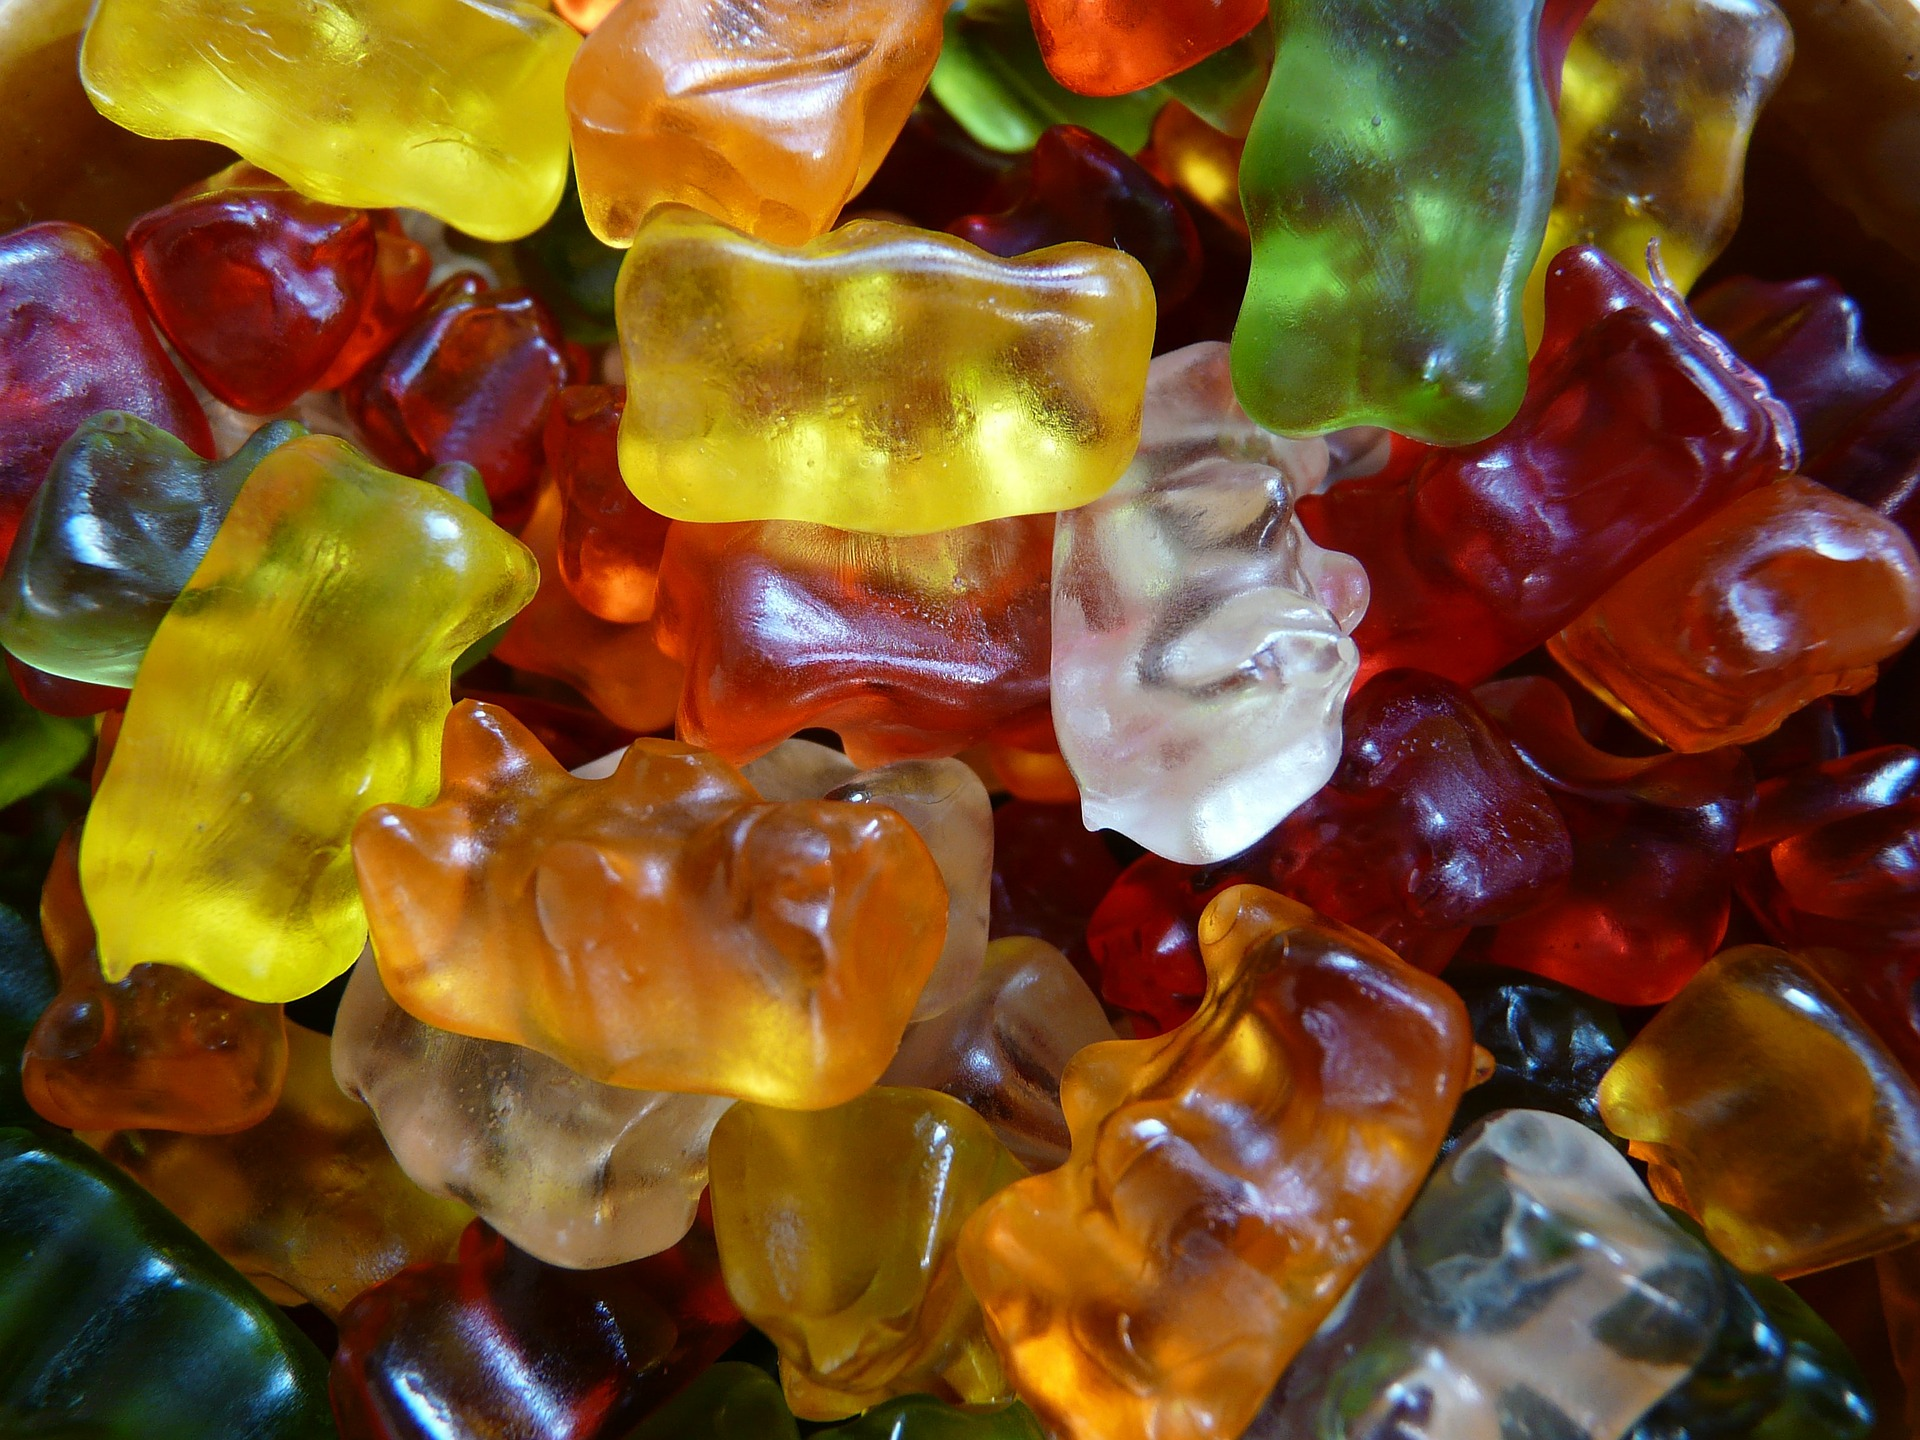 gelatin is one of many rare food allergies